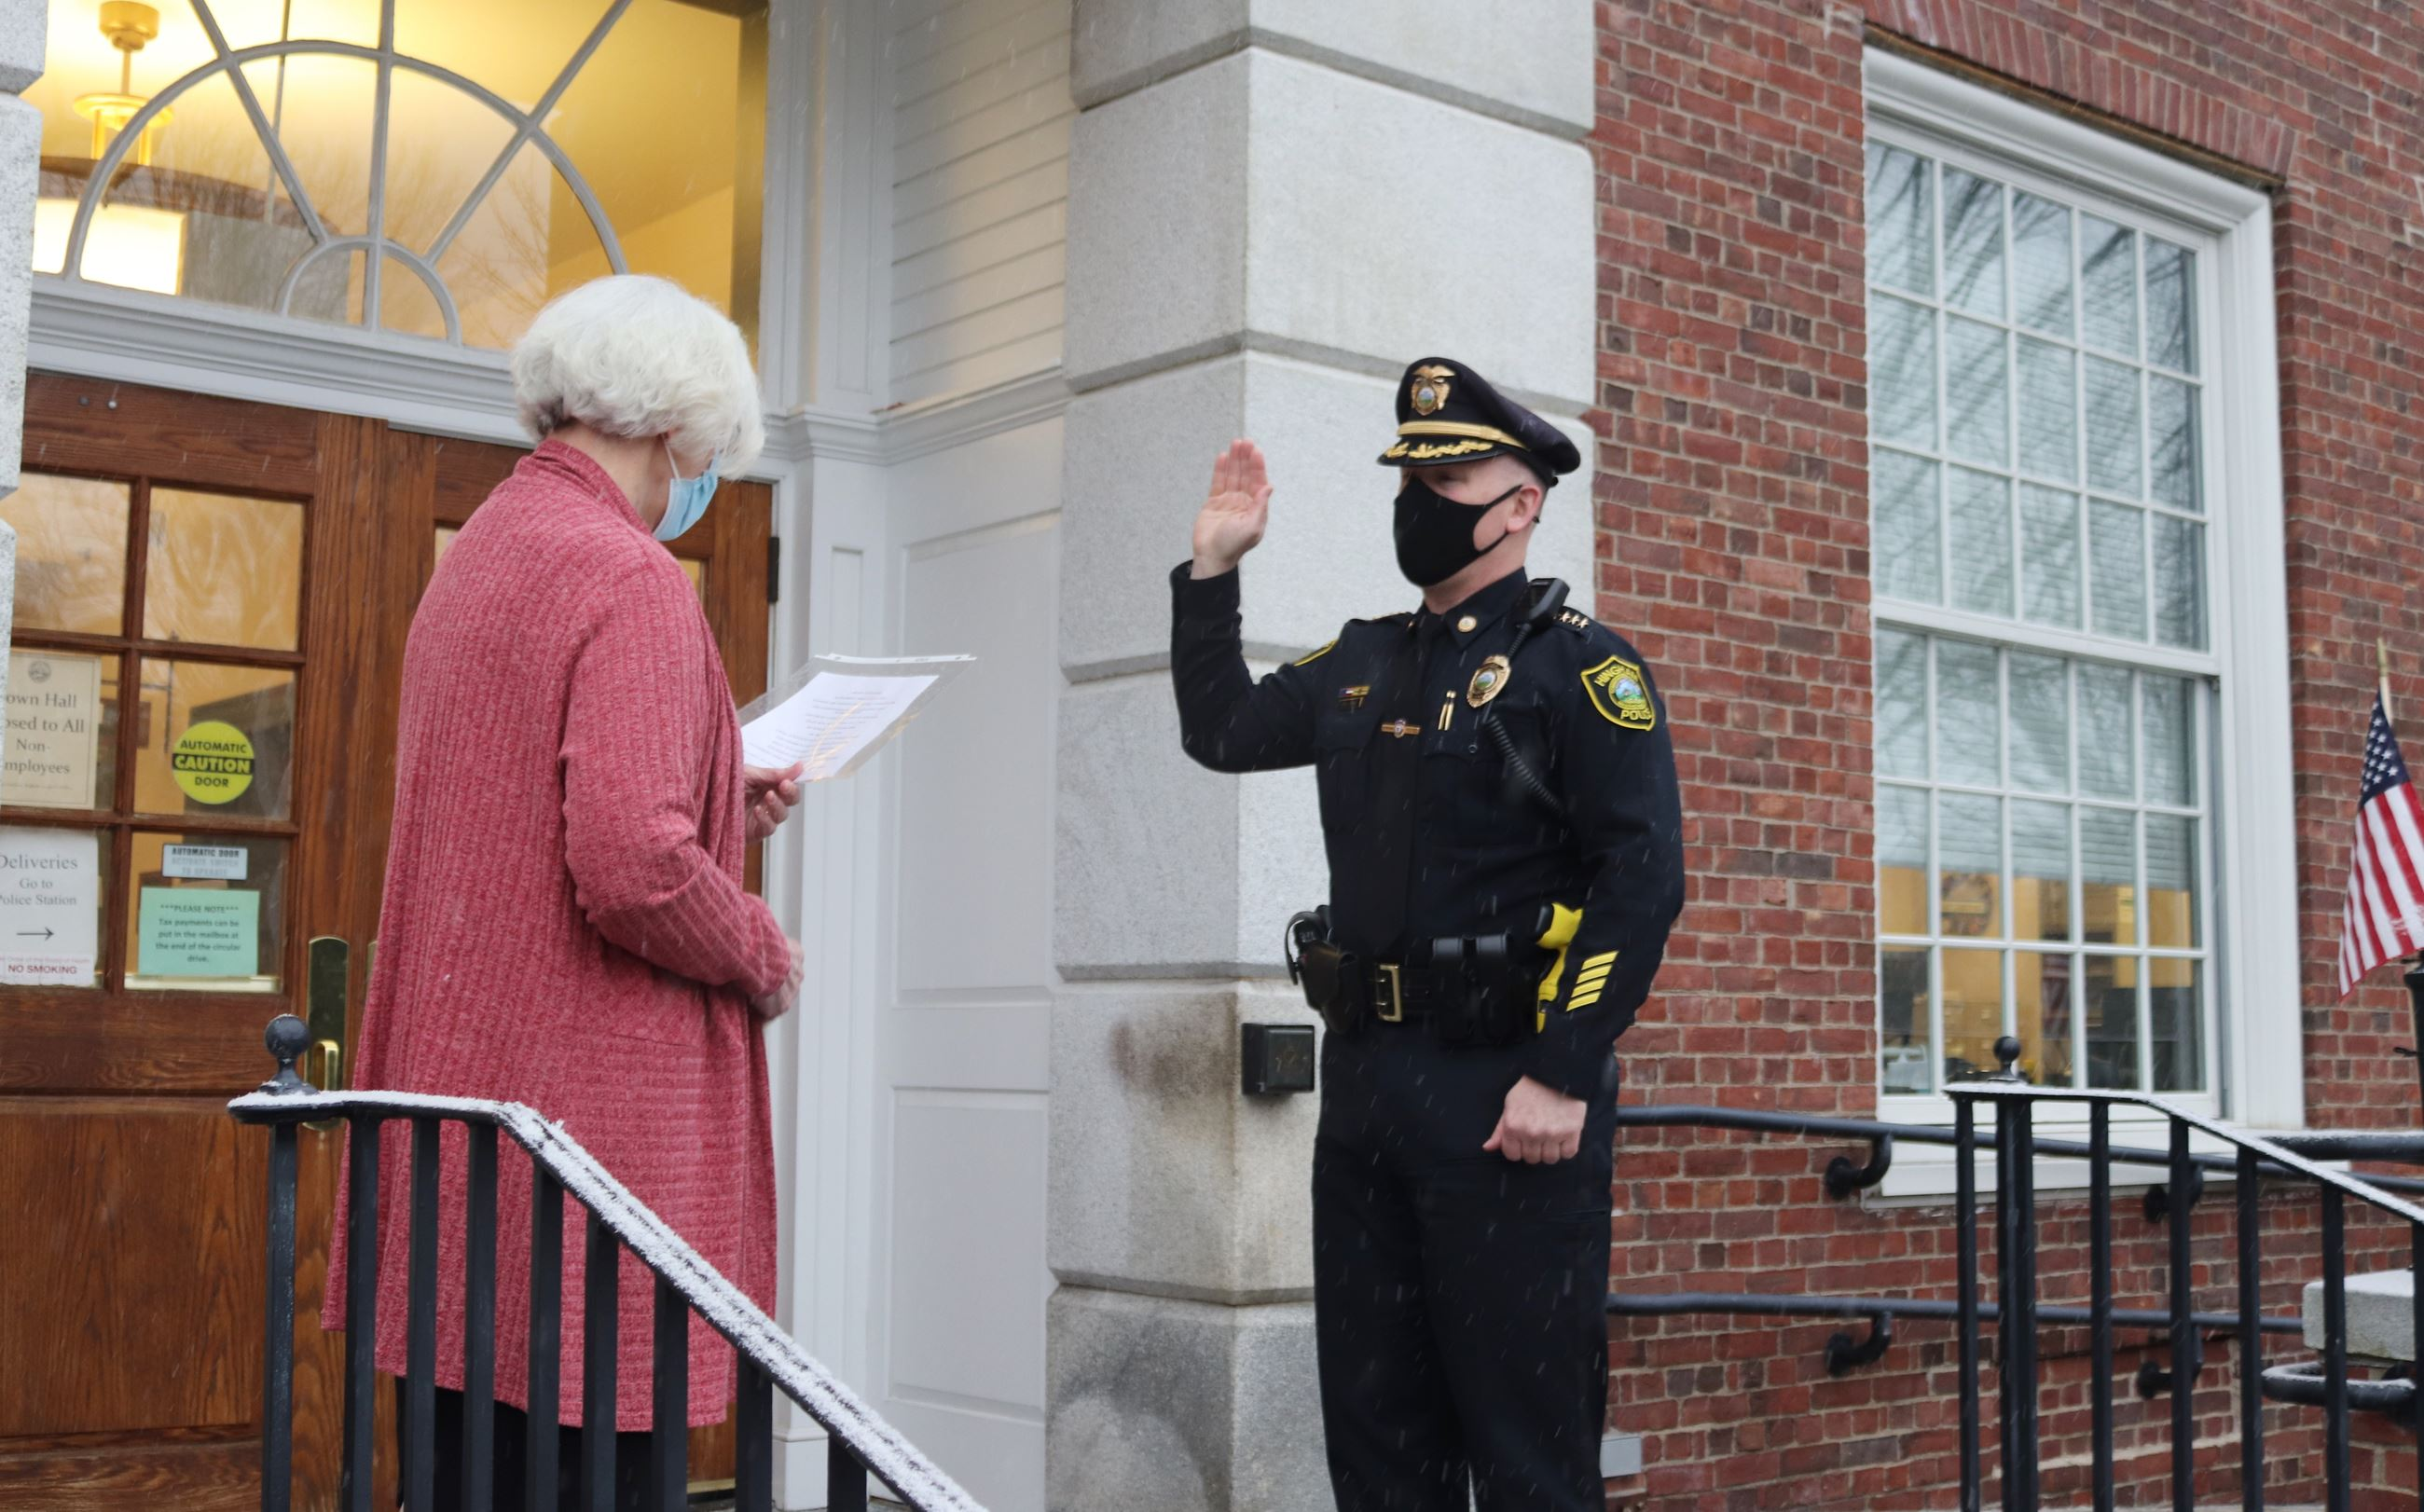 Chief David Jones raising his hand as he is sworn in as Police Chief